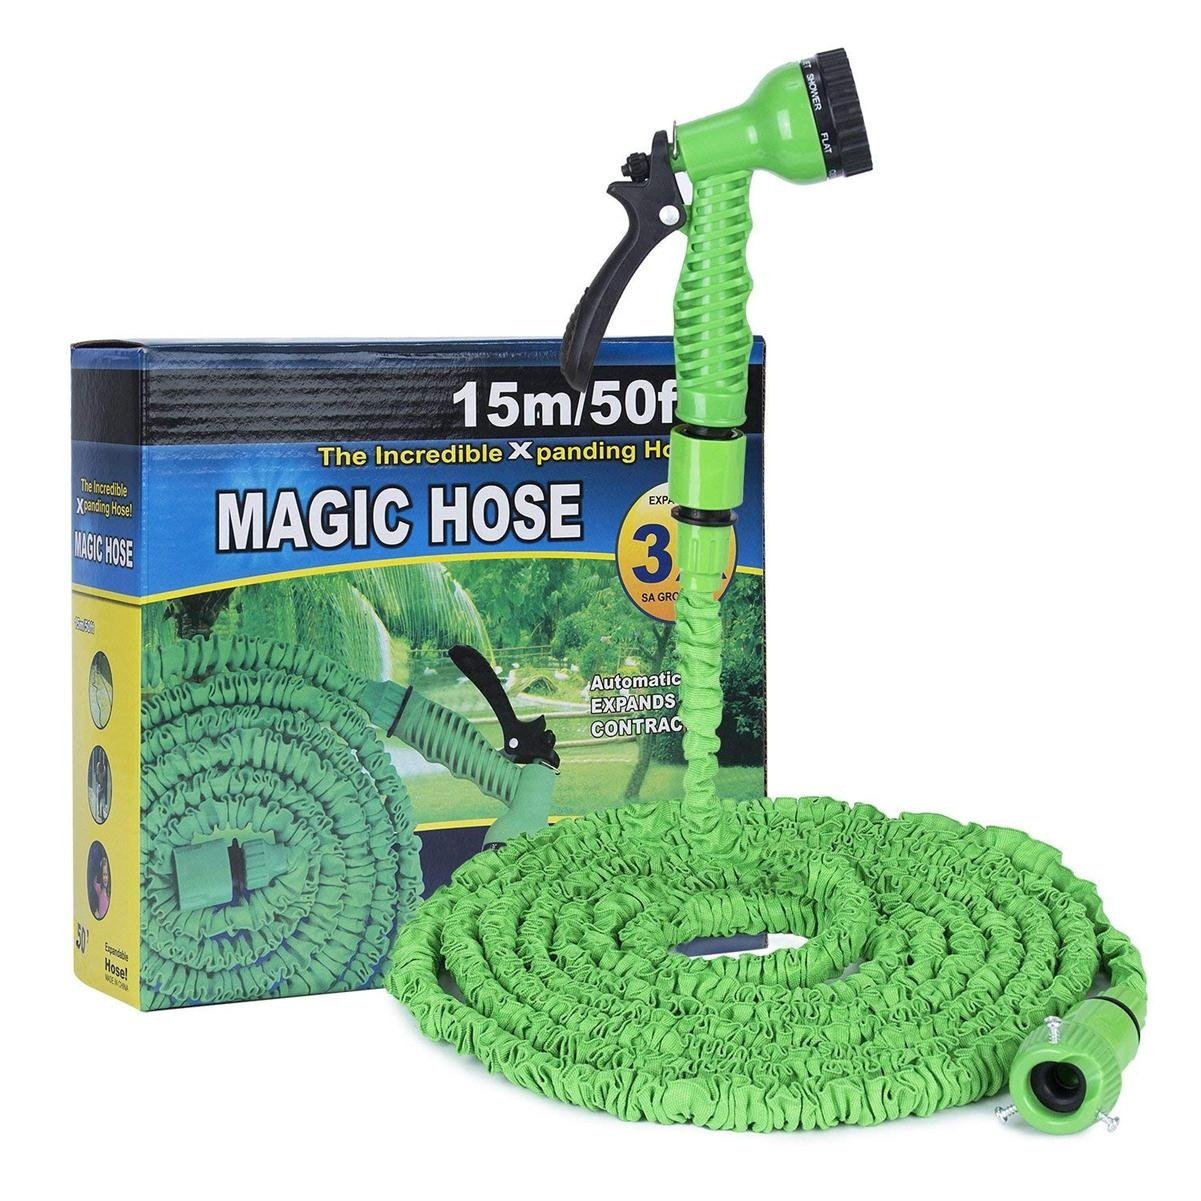 Hakkin Expandable Garden Hose Kit,Improved 50ft Magic Flexible Water Hose,7 in 1 Spray Gun Ajustable Nozzles for 7 Pattern High Pressure Power Washer